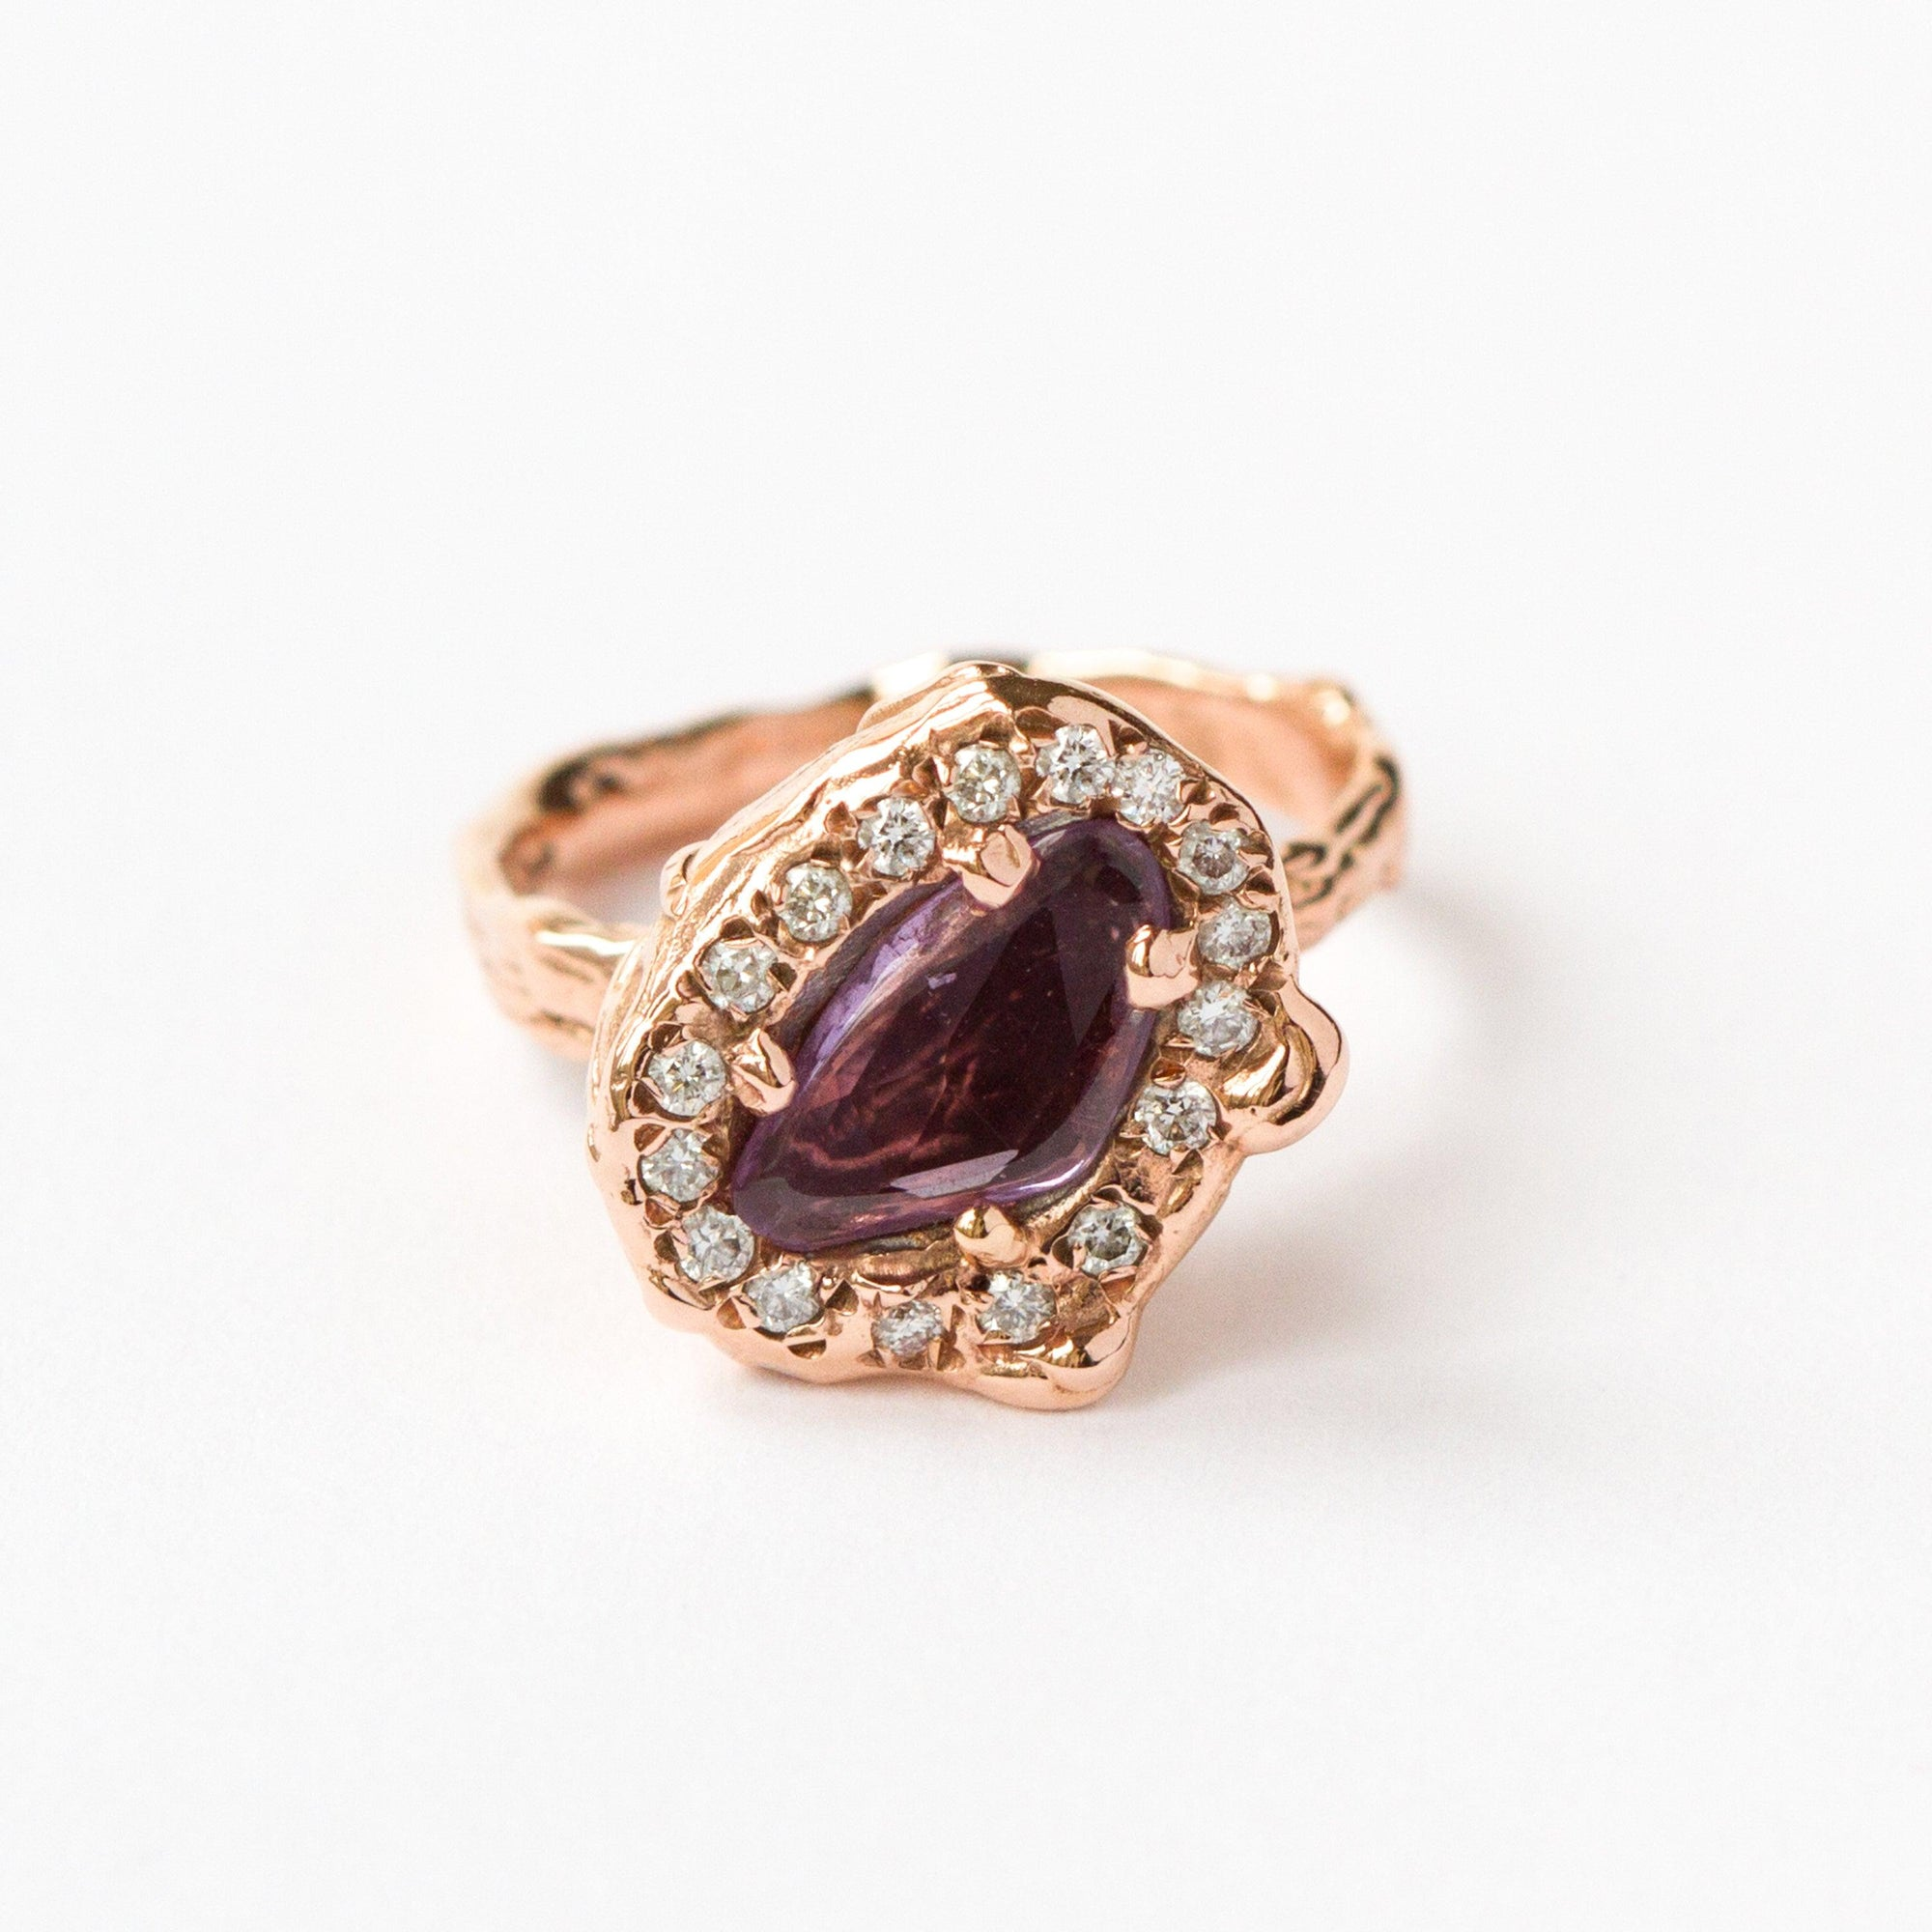 Rose gold ring handmade set with white diamonds and rose/purple sapphire rose cut